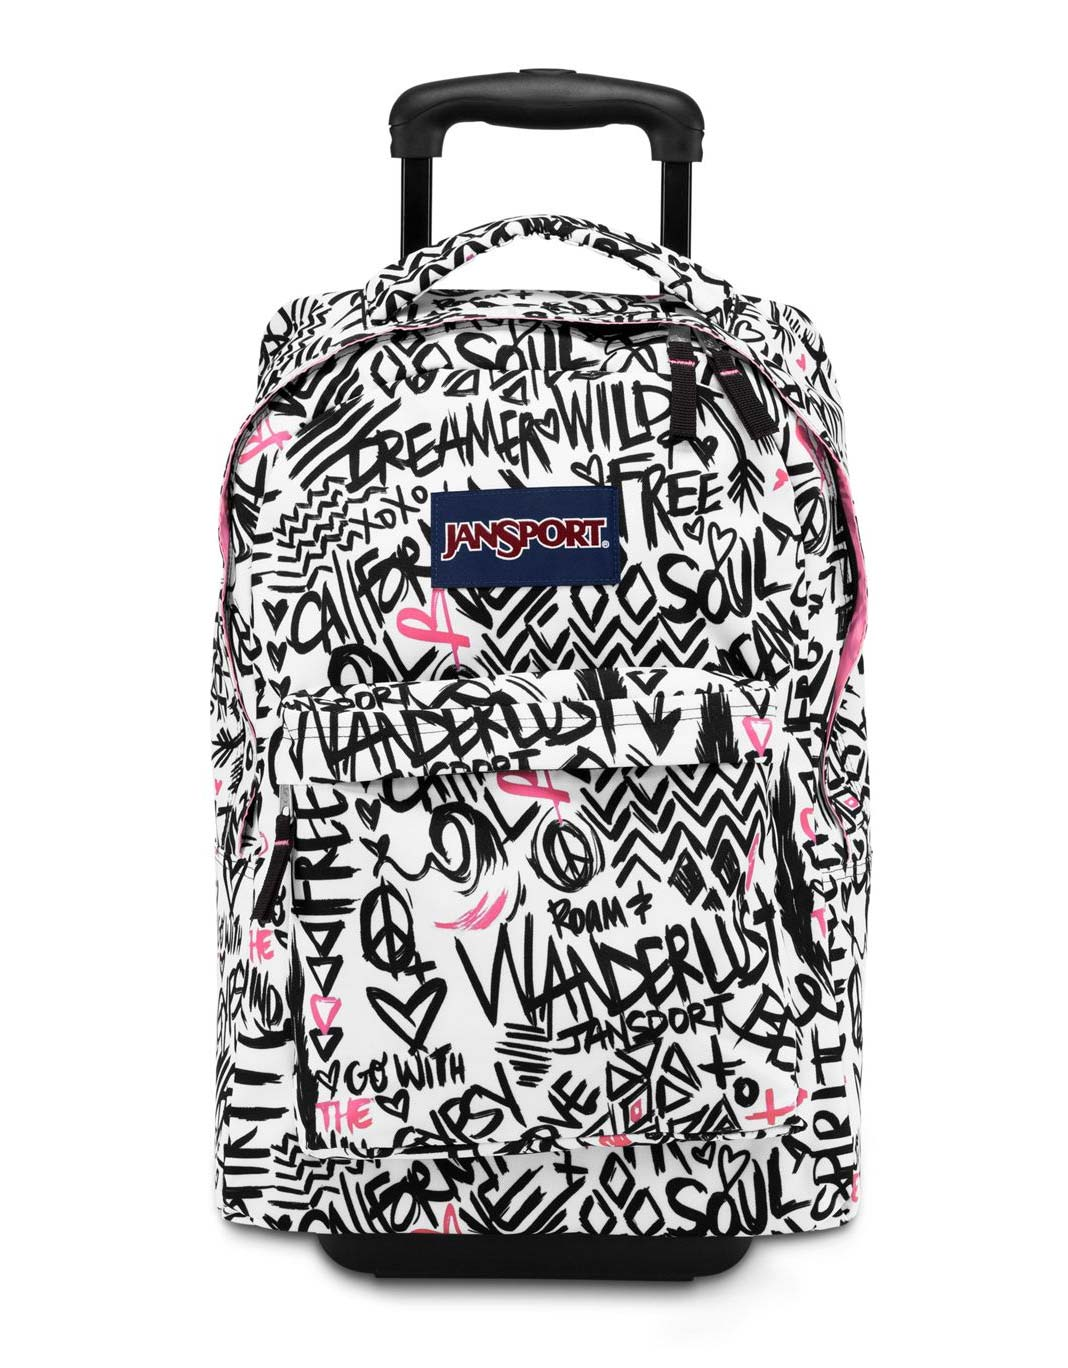 Rolling Backpacks For Girls samhQT1W